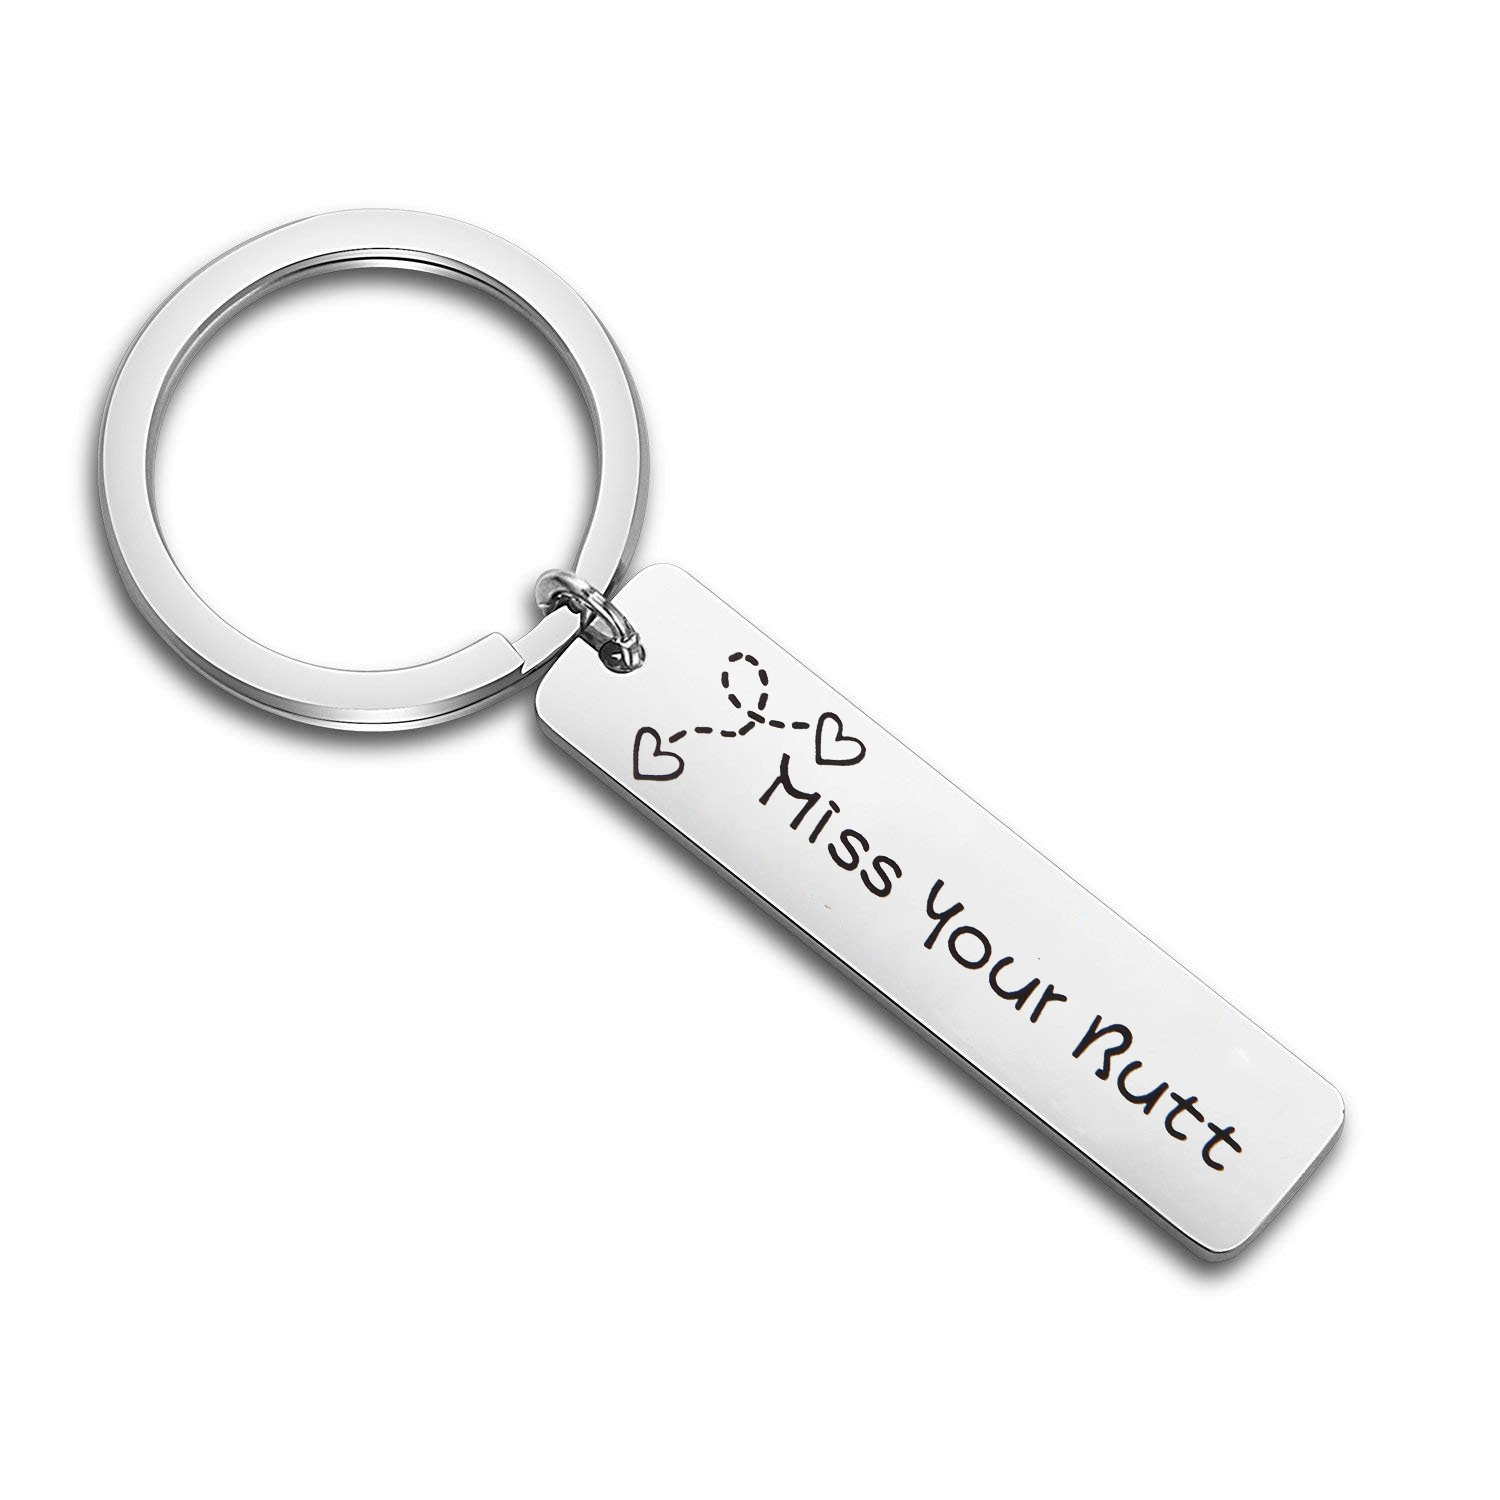 MAOFAED Miss Your Butt Long Distance Relationship gift LDR LDRSHIP love friends for Him or Her (Miss Your Butt Keychain)